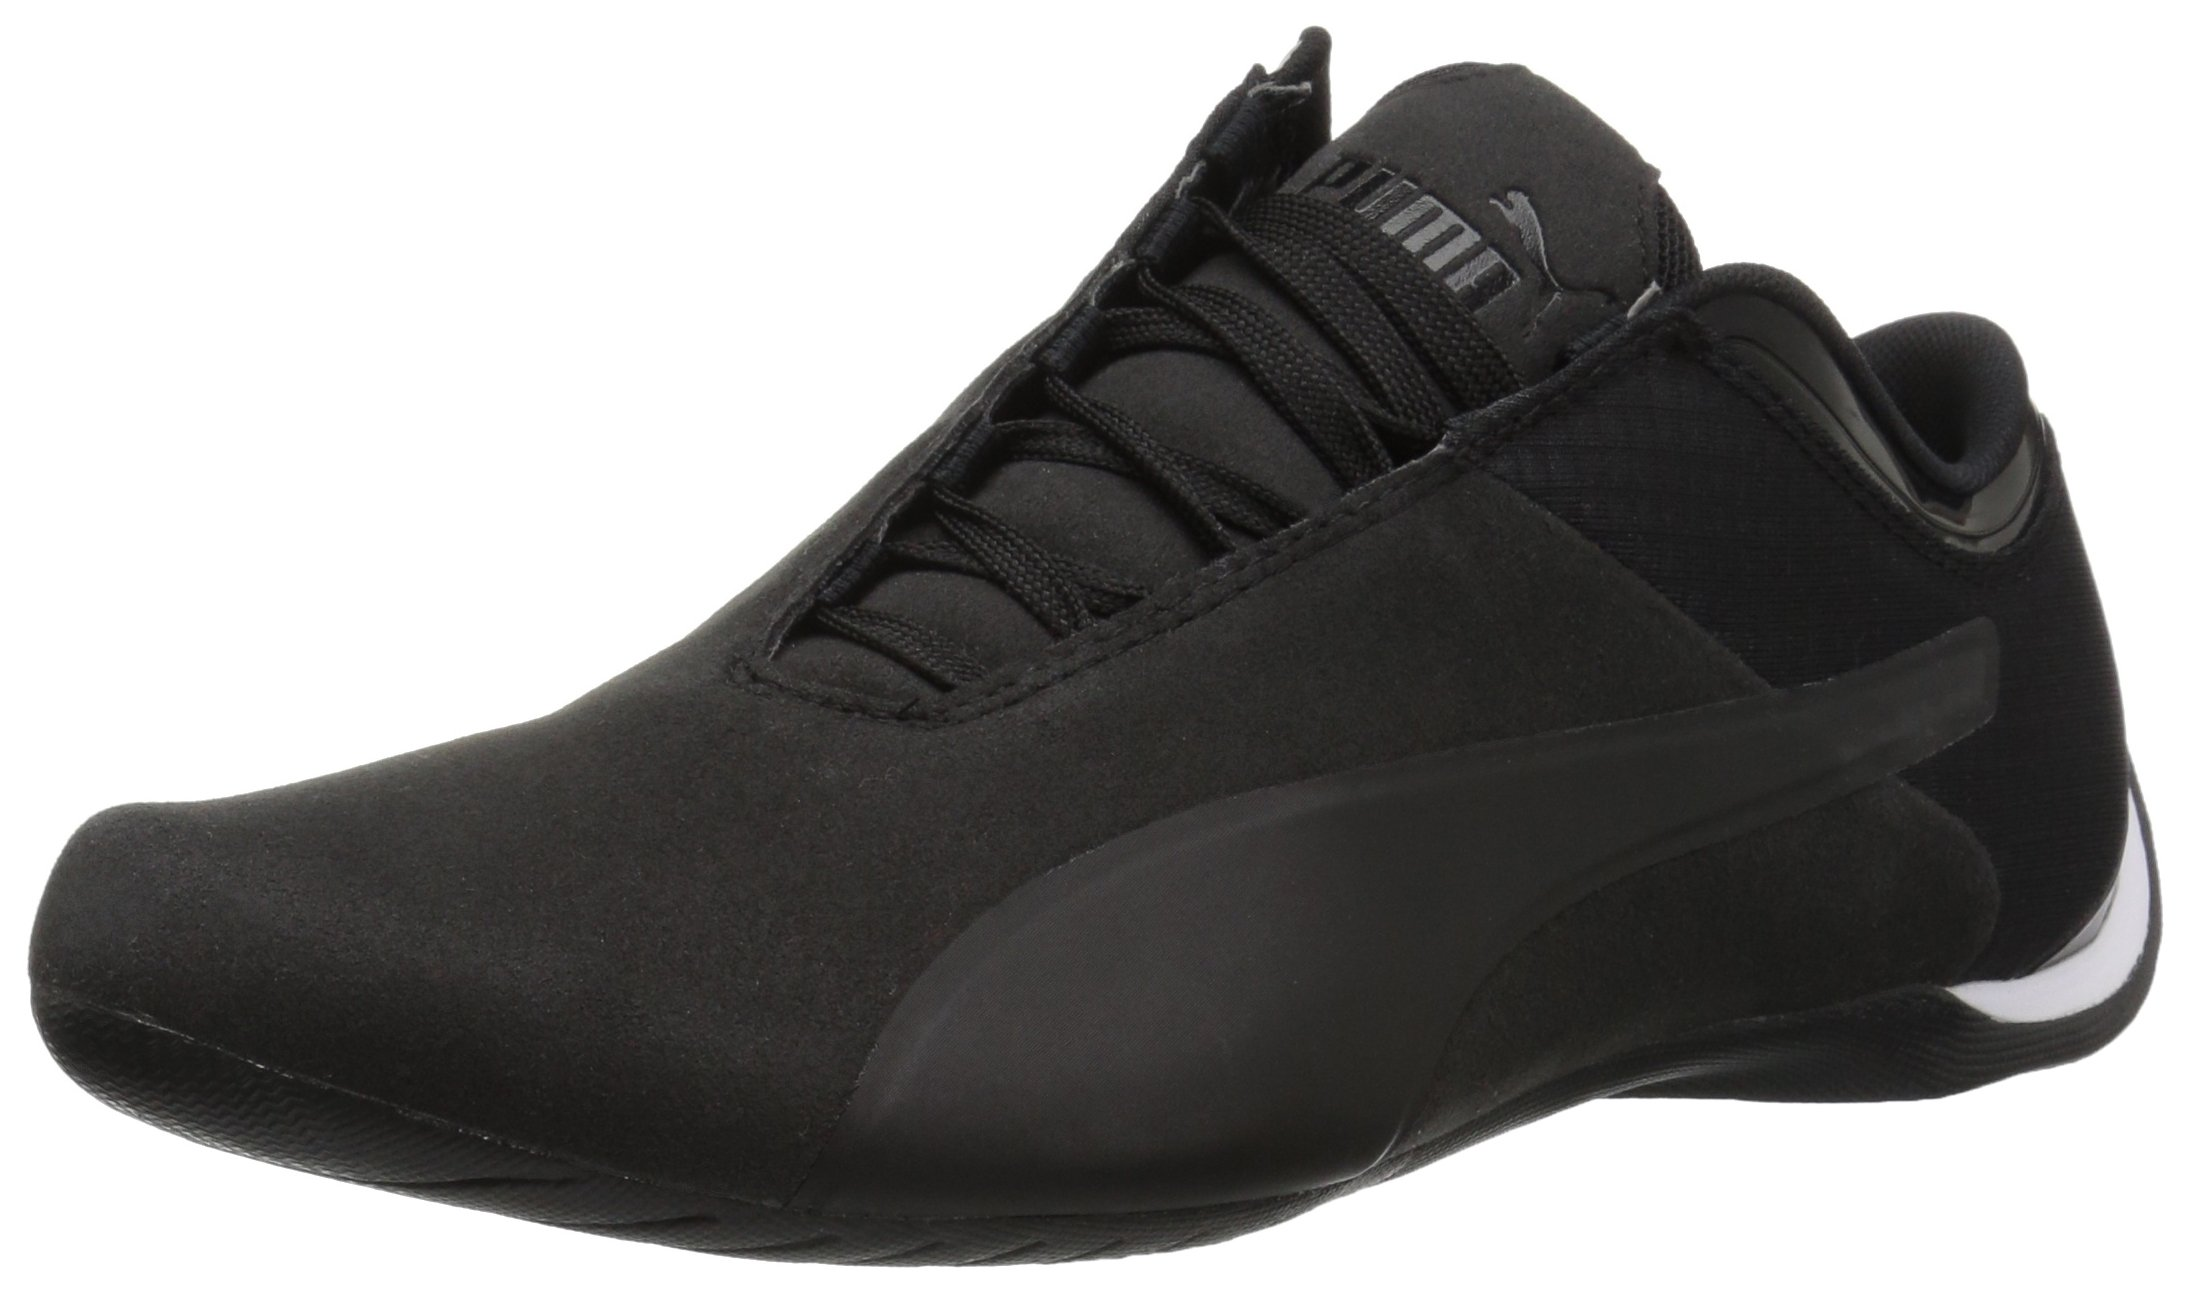 PUMA Men's Future Cat M1 Summer Walking Shoe, Black, 11.5 M US